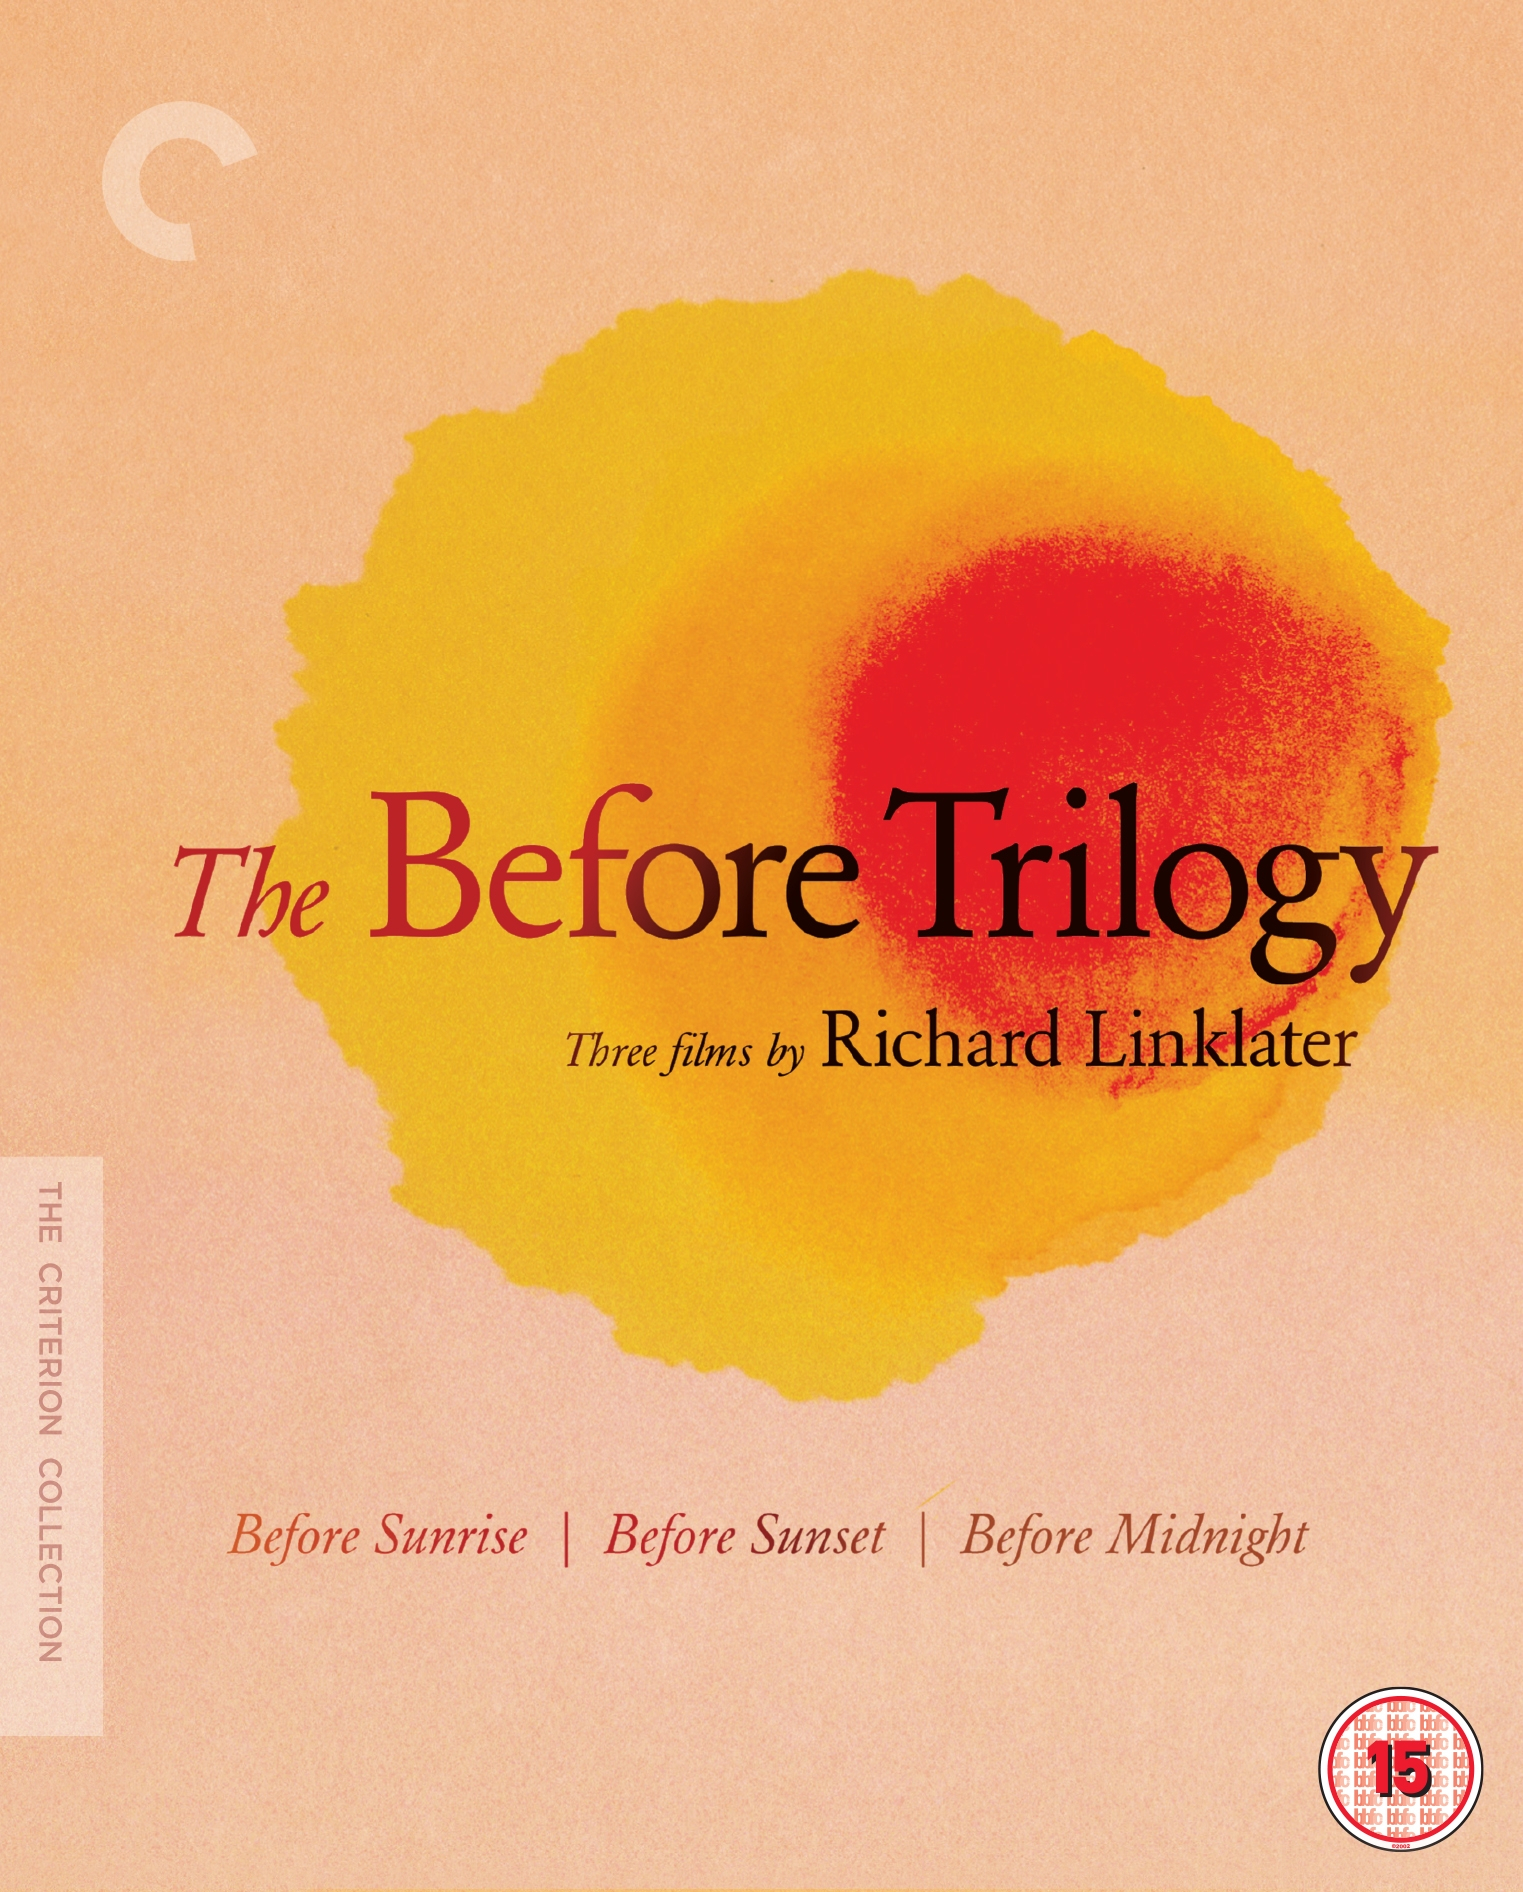 Buy The Before Trilogy (Blu-ray)